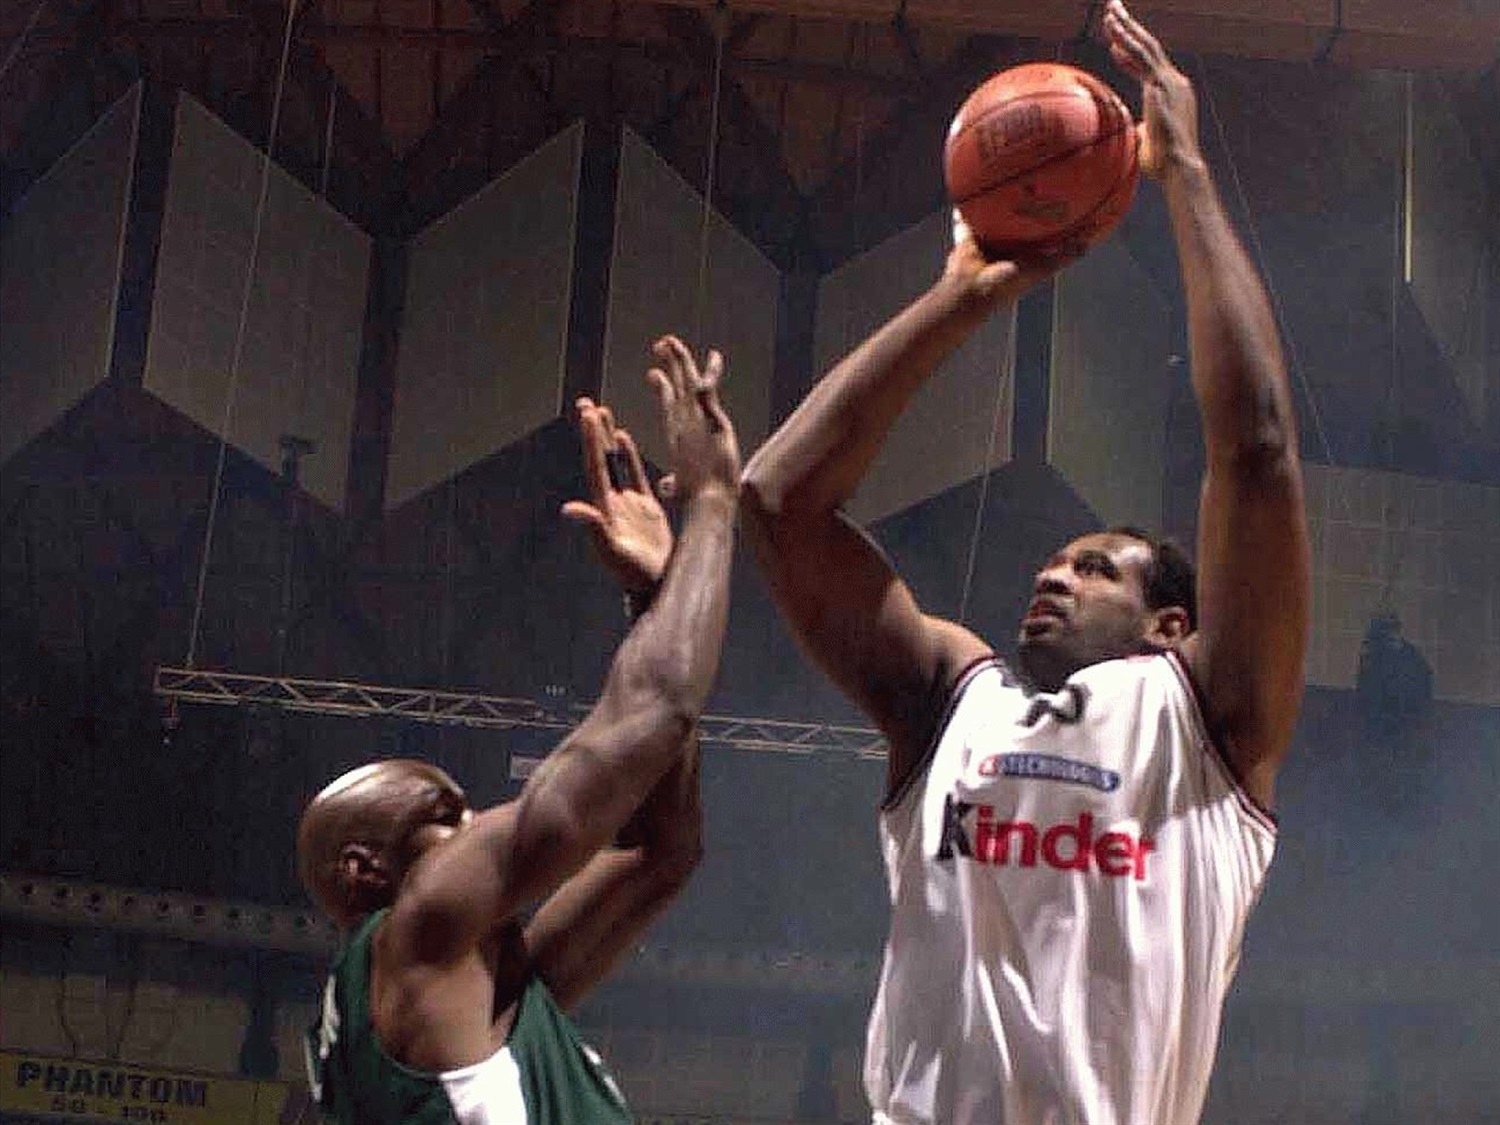 Rashard Griffith - Kinder Bologna - Final Four Bologna 2002 - EC01